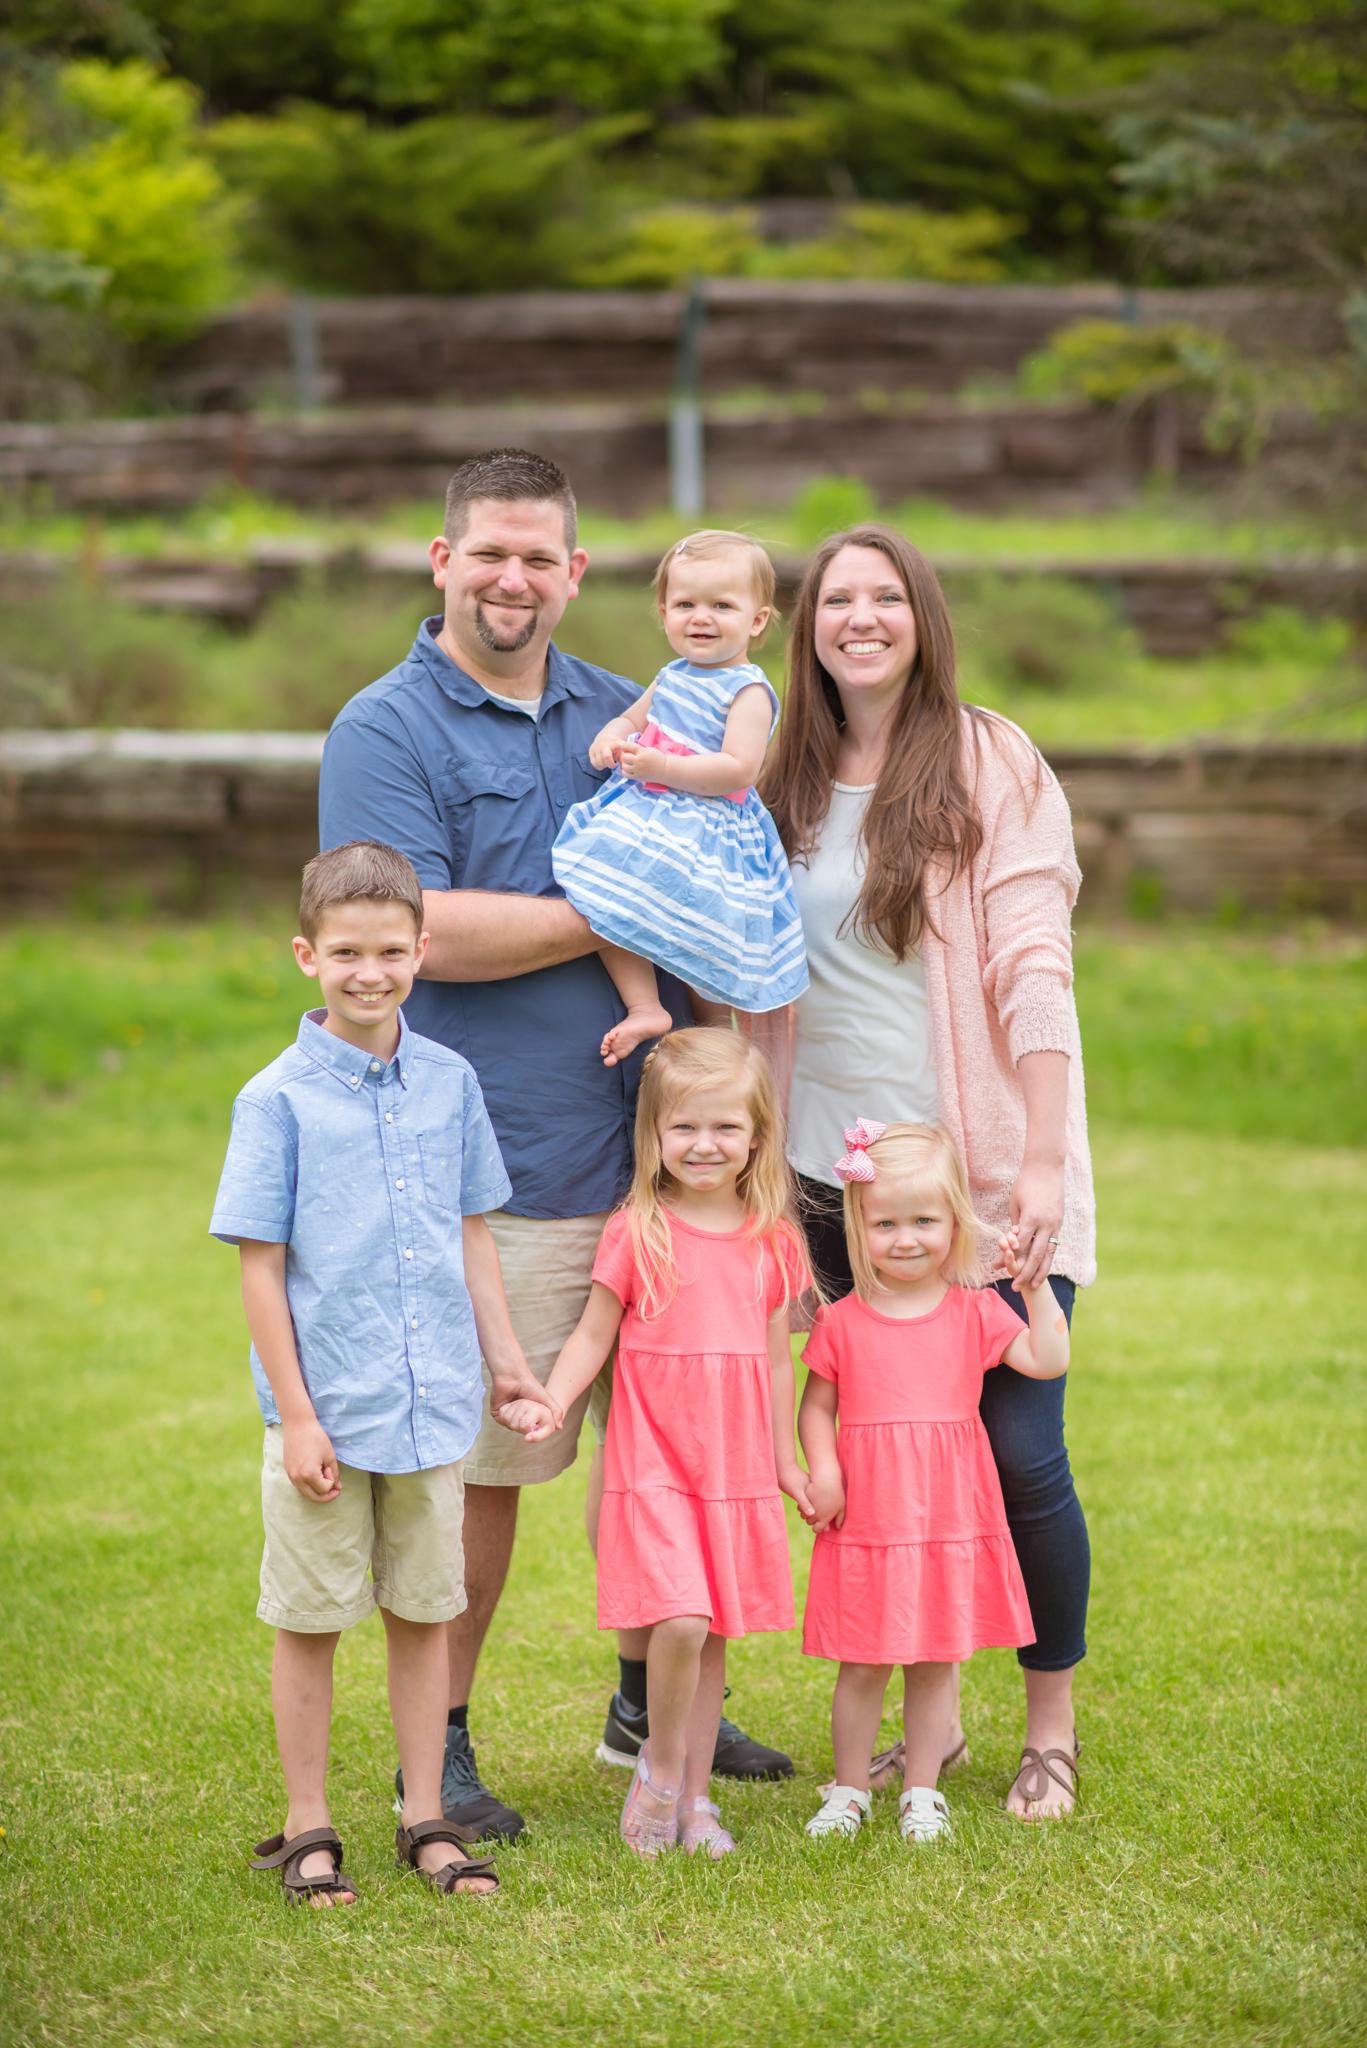 Family of 6 Photo Session in Corunna, Michigan